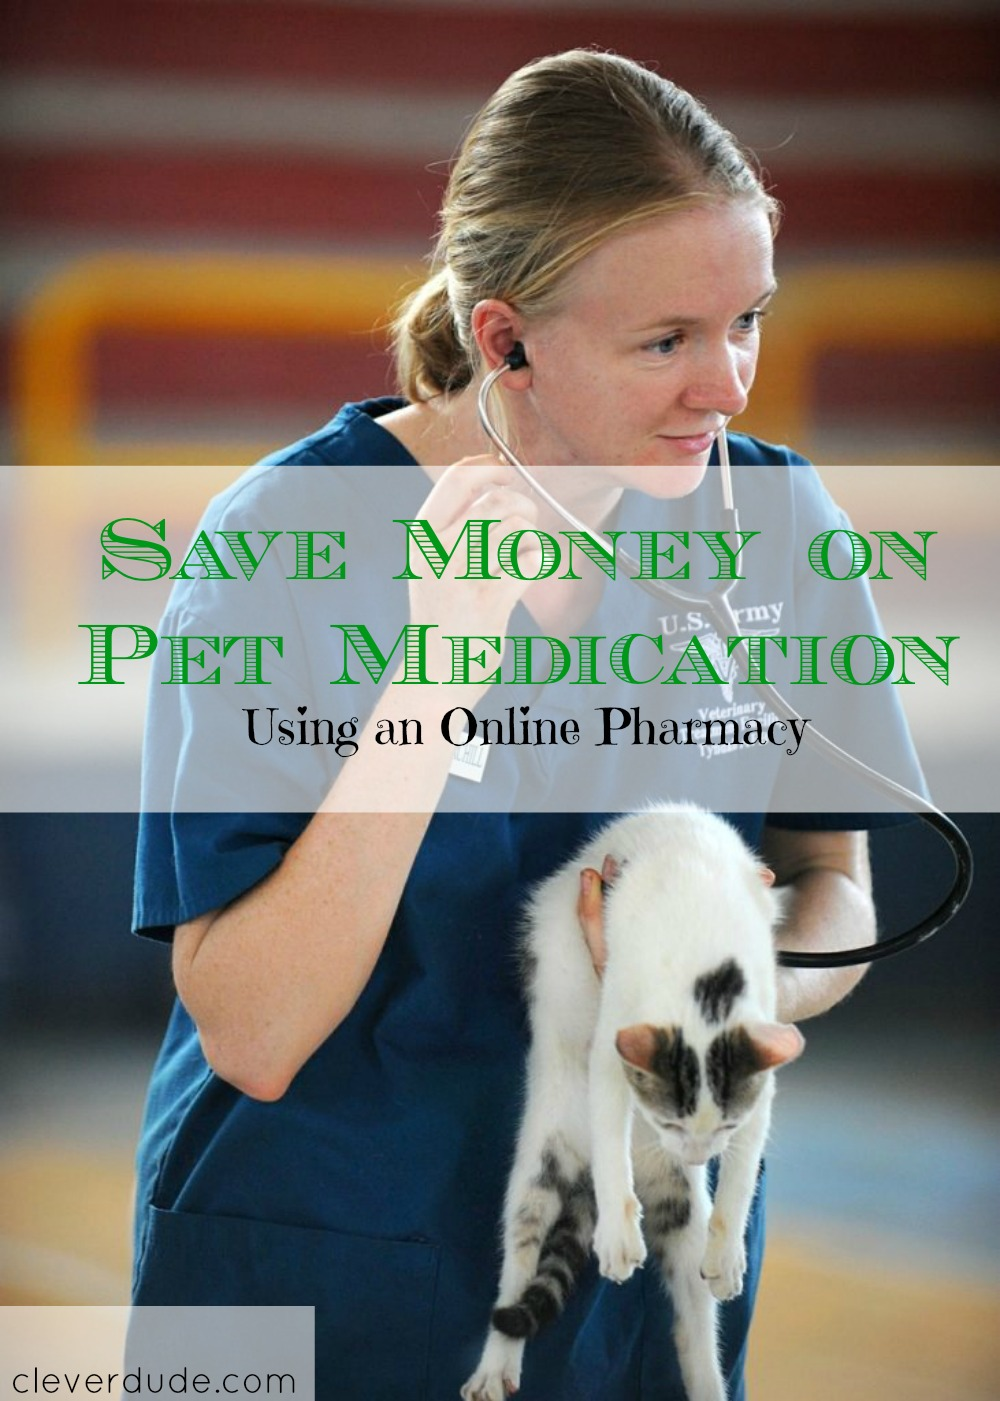 save money on pet expenses, save money on pet's medications, online pharmacy advantages